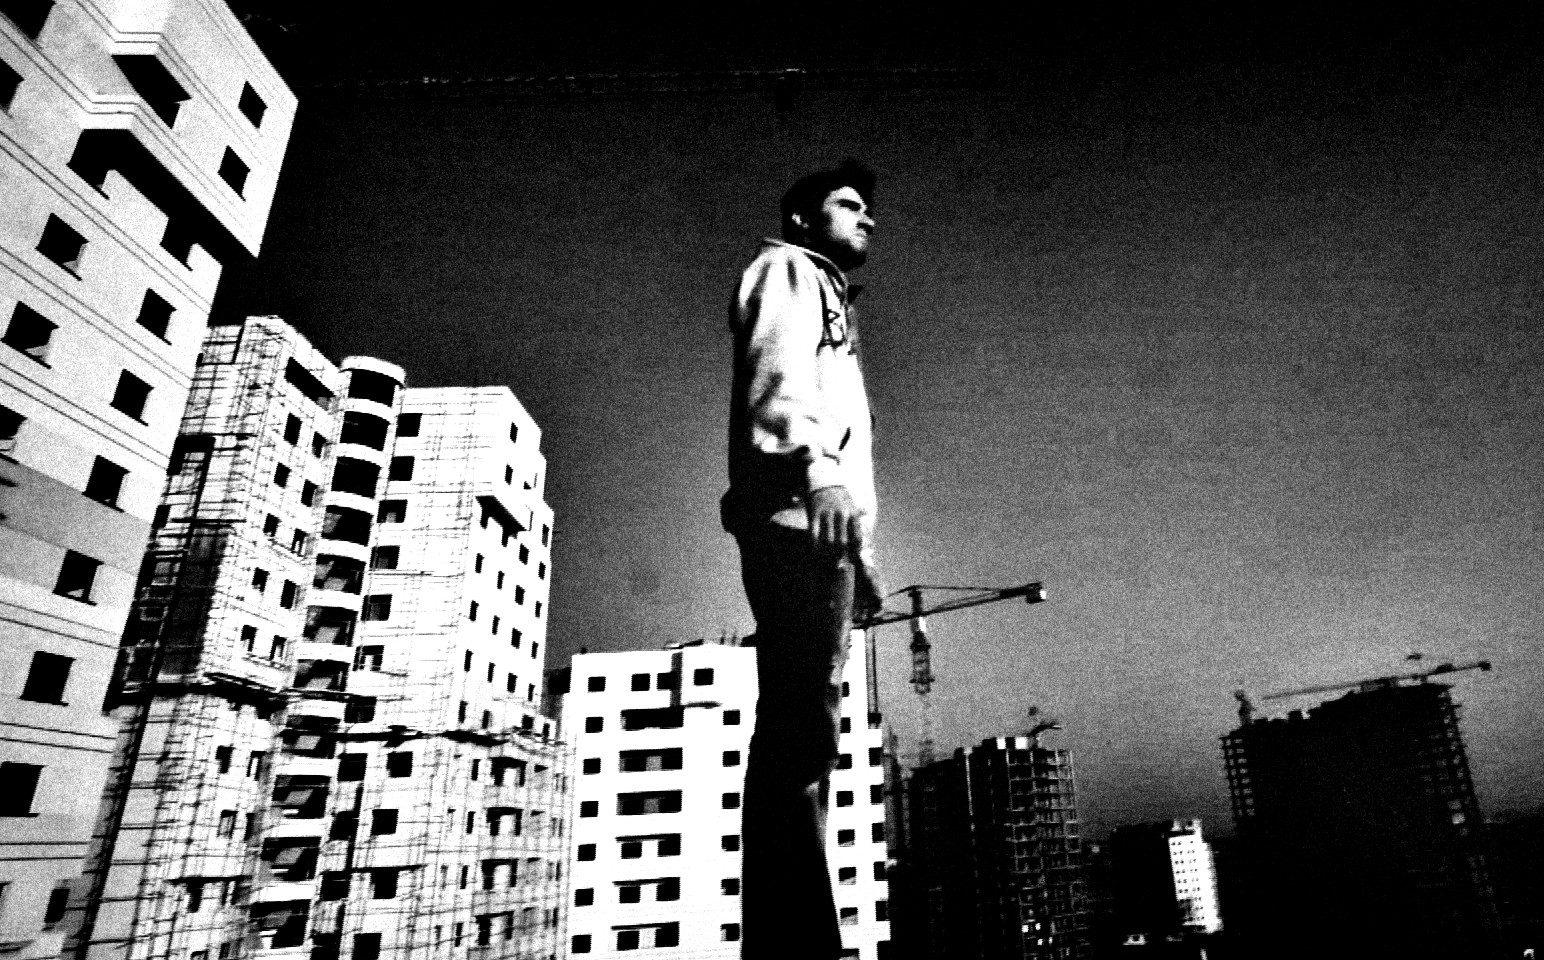 Newzif (Iran) - A young man goes up a tall building. Exhausted and breathless, he reaches the rooftop. On the edge of the roof, he starts a game which has no end. - 06:20Directed by Mohamad Esmaeeli